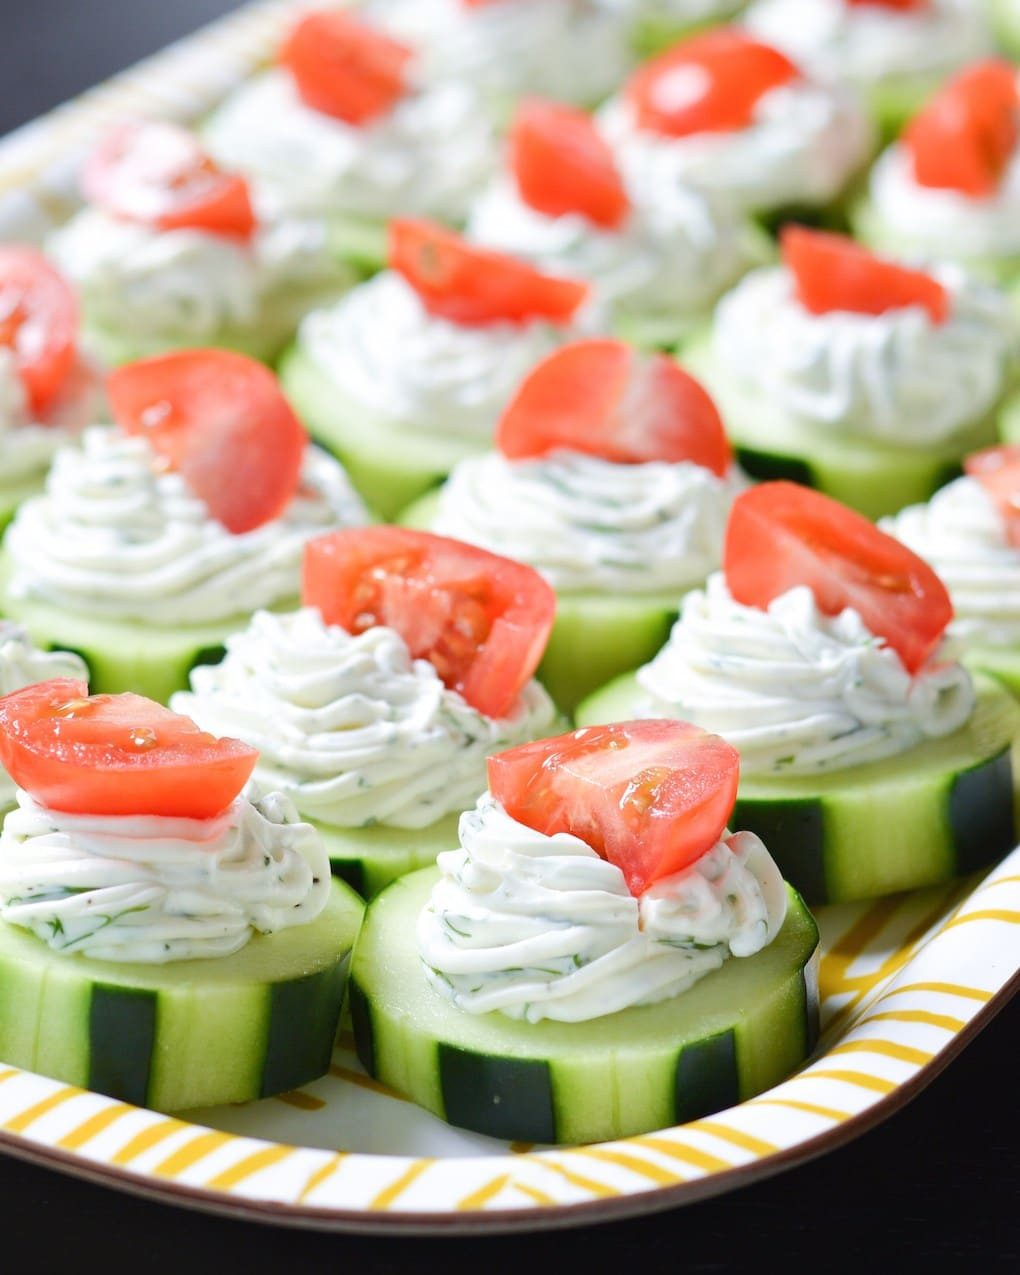 Healthy Christmas Appetizers For Parties  18 Skinny Appetizers For Your Holiday Parties